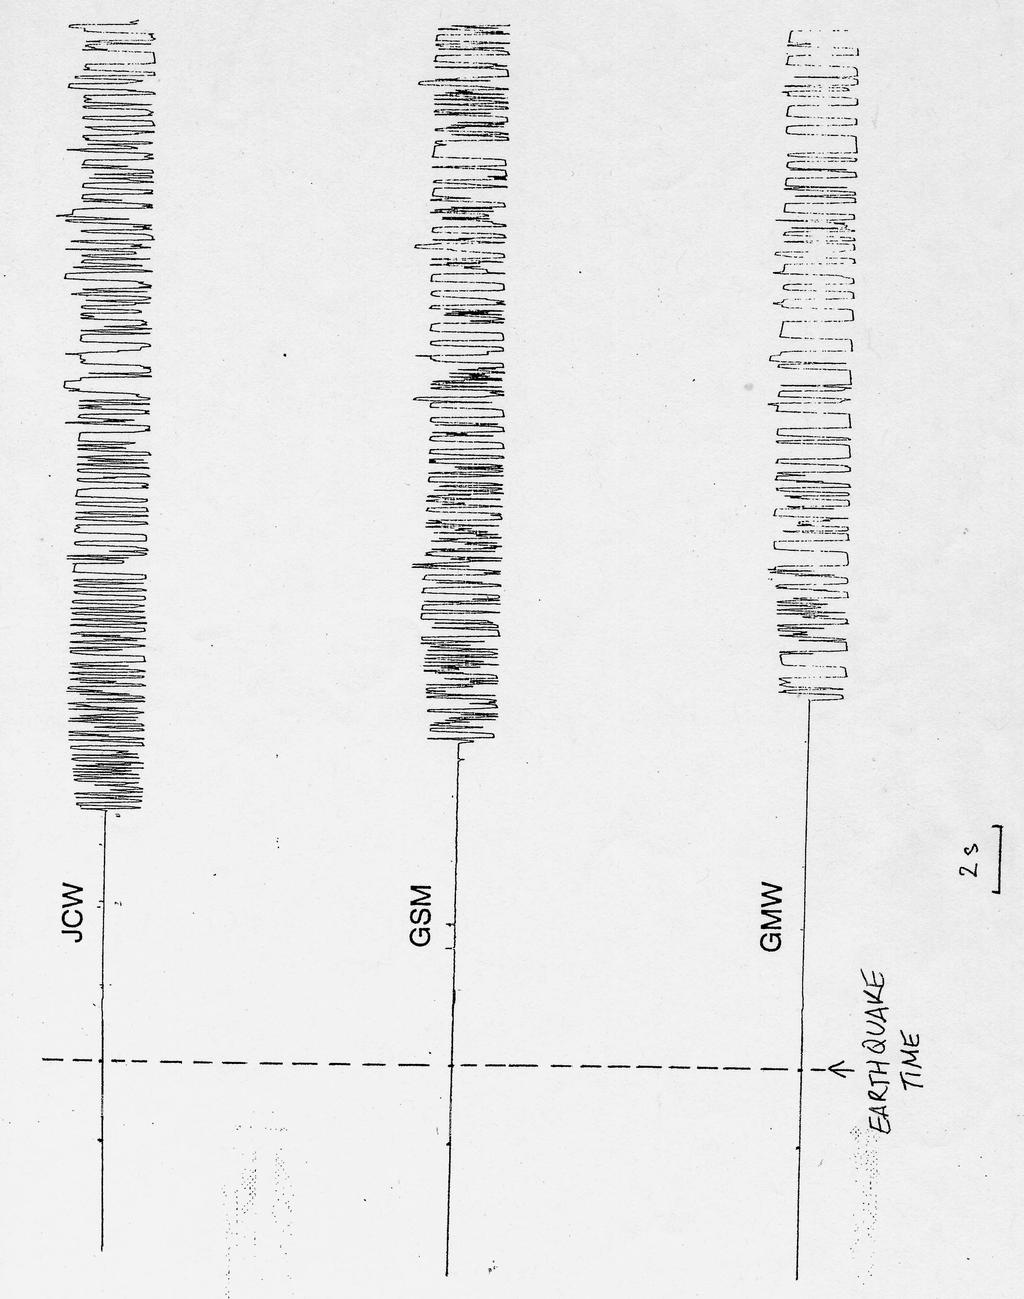 Figure 11-2 Seismograms from seismic stations JCW, GSM and GMW.